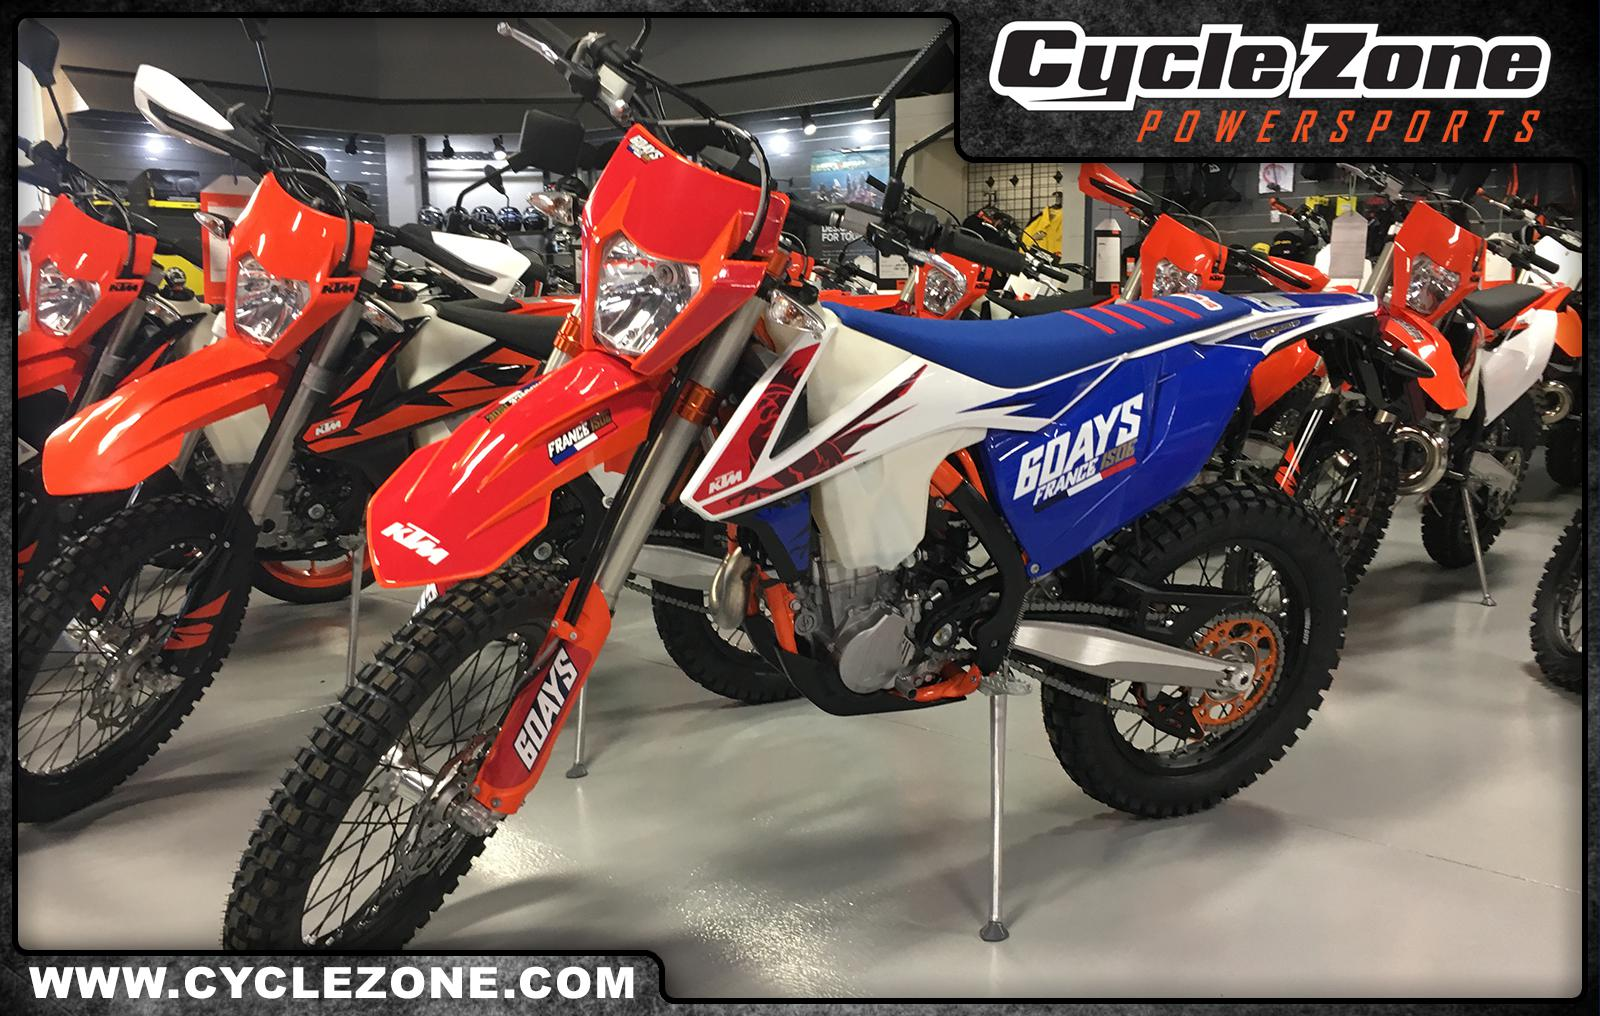 2018 ktm 690. modren 690 2018 ktm 450 excf six days for sale in topeka ks  cycle zone powersports  866 8437433 on ktm 690